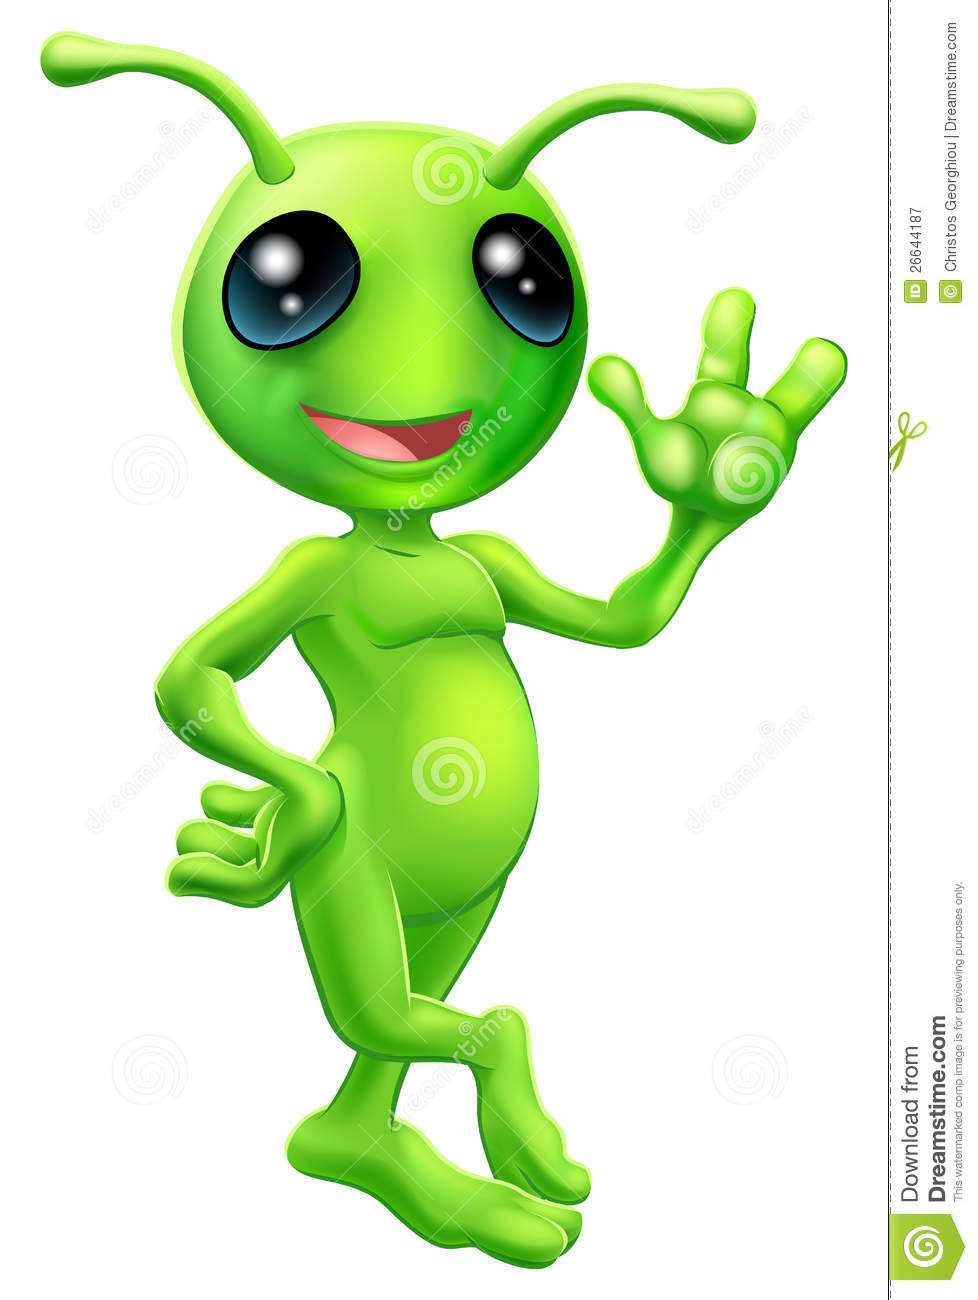 [Image: little-green-man-alien-26644187.jpg]